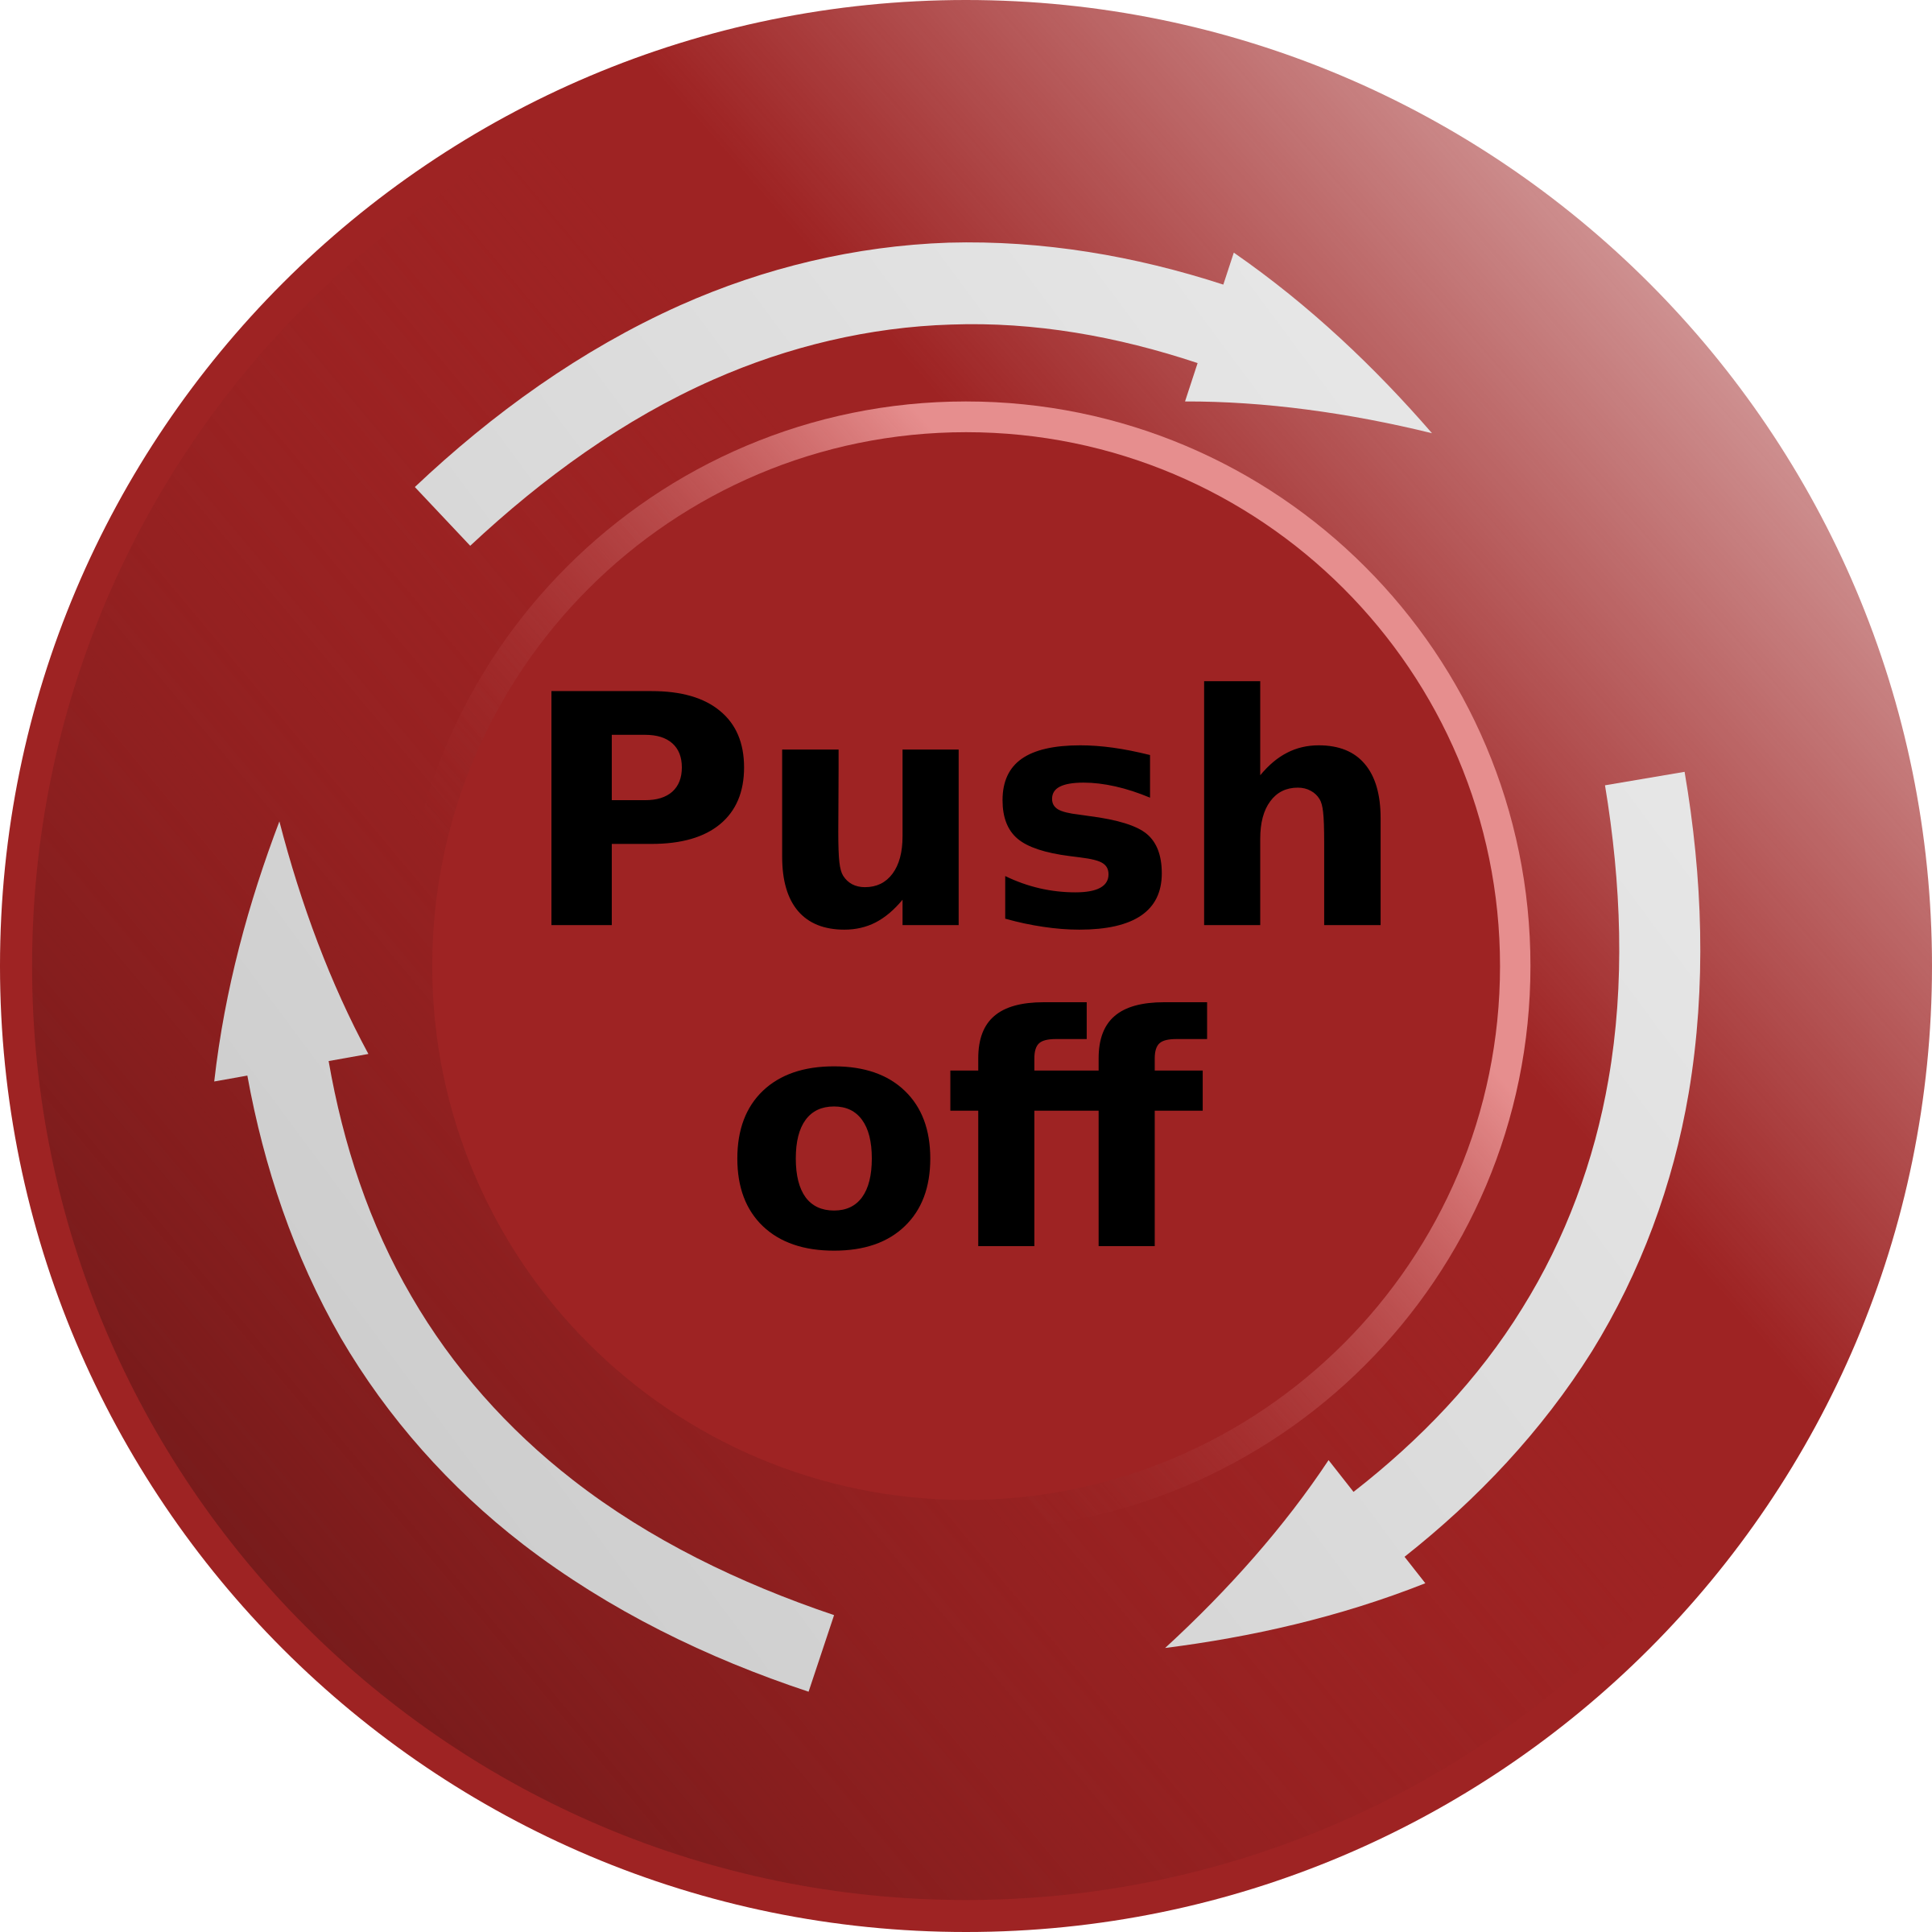 Emergency clipart emergency drill. Button encode to base